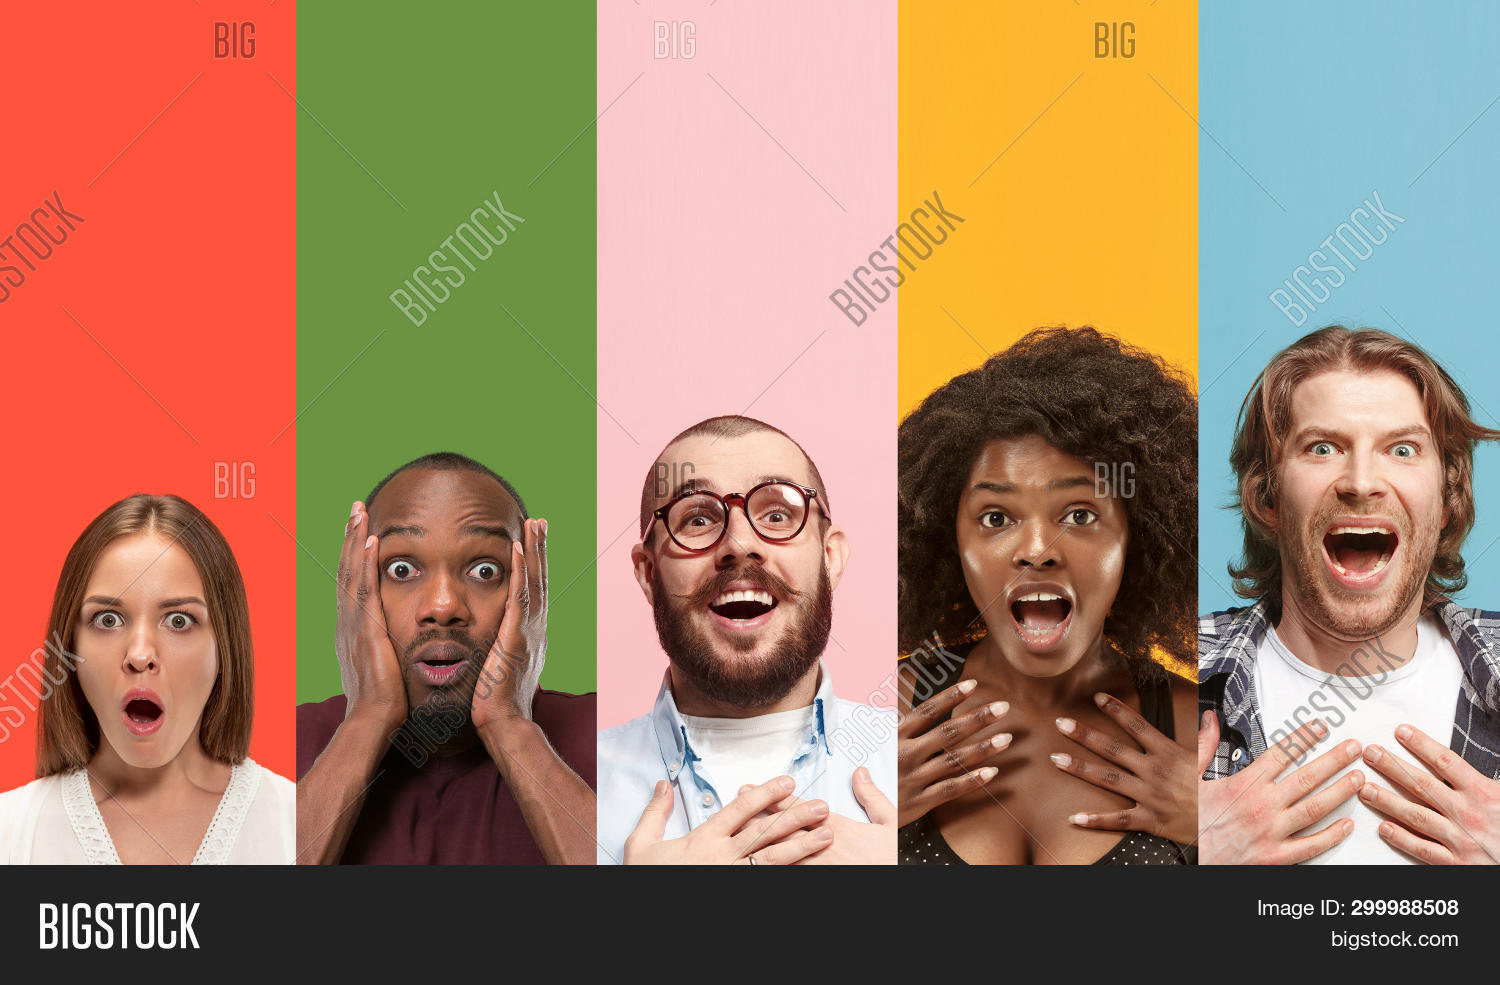 adult,amazed,amazement,amazing,astonished,astonishment,attractive,background,bearded,businessman,casual,caucasian,collage,creative,emotion,emotional,excited,expression,expressive,face,facial,fan,female,funny,handsome,happy,head,hipster,isolated,male,man,men,model,multicolored,people,person,portrait,positive,shock,shocked,studio,suprise,surprise,surprised,trendy,women,wonder,wow,young